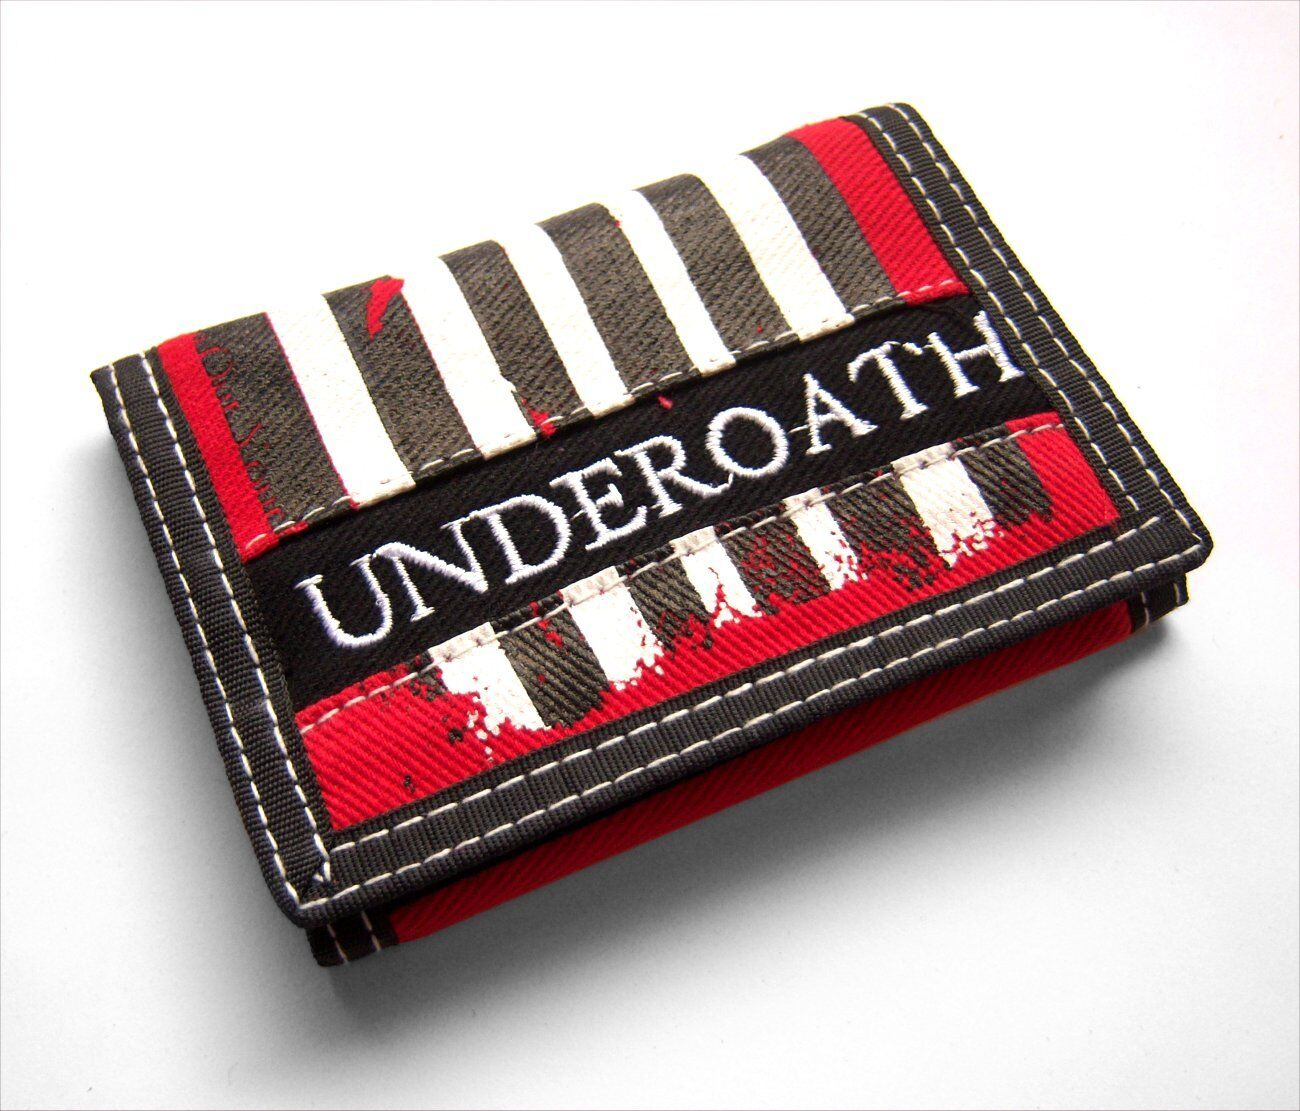 Underoath Grenades Striped Canvas Embroidered Trifold Wallet New Official